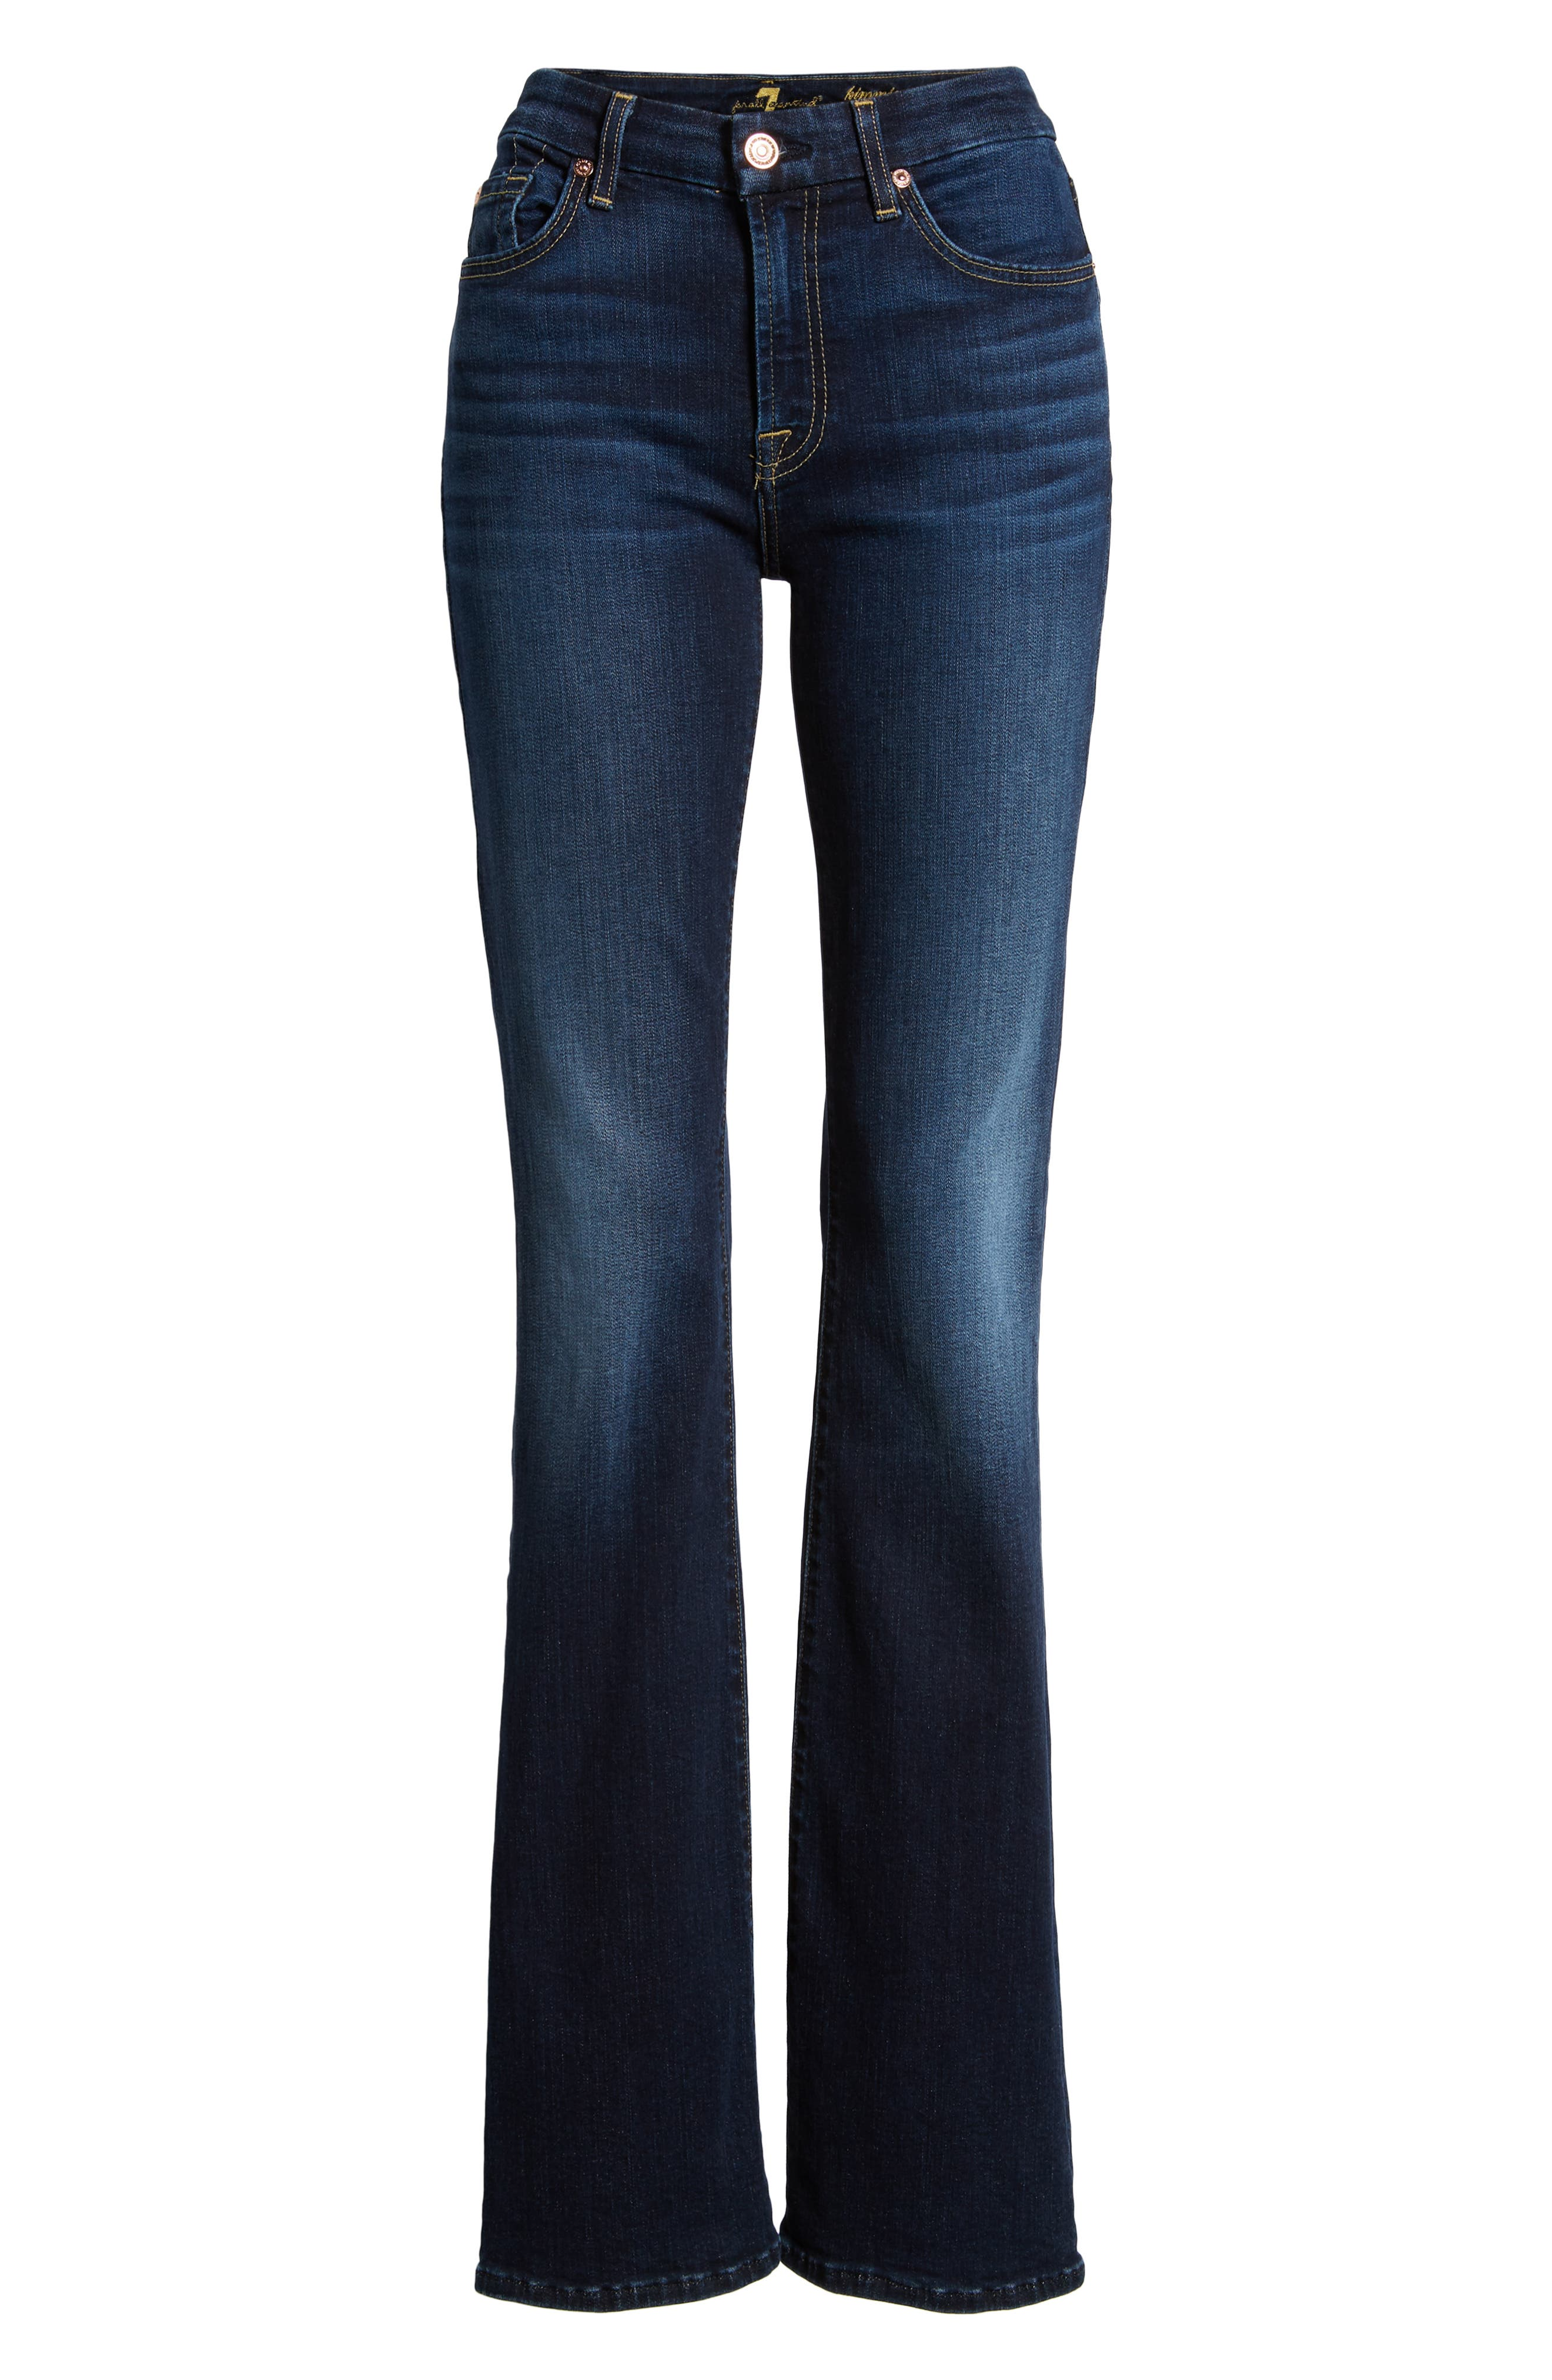 7 FOR ALL MANKIND<SUP>®</SUP>, b(air) Kimmie Bootcut Jeans, Alternate thumbnail 7, color, AUTHENTIC FATE